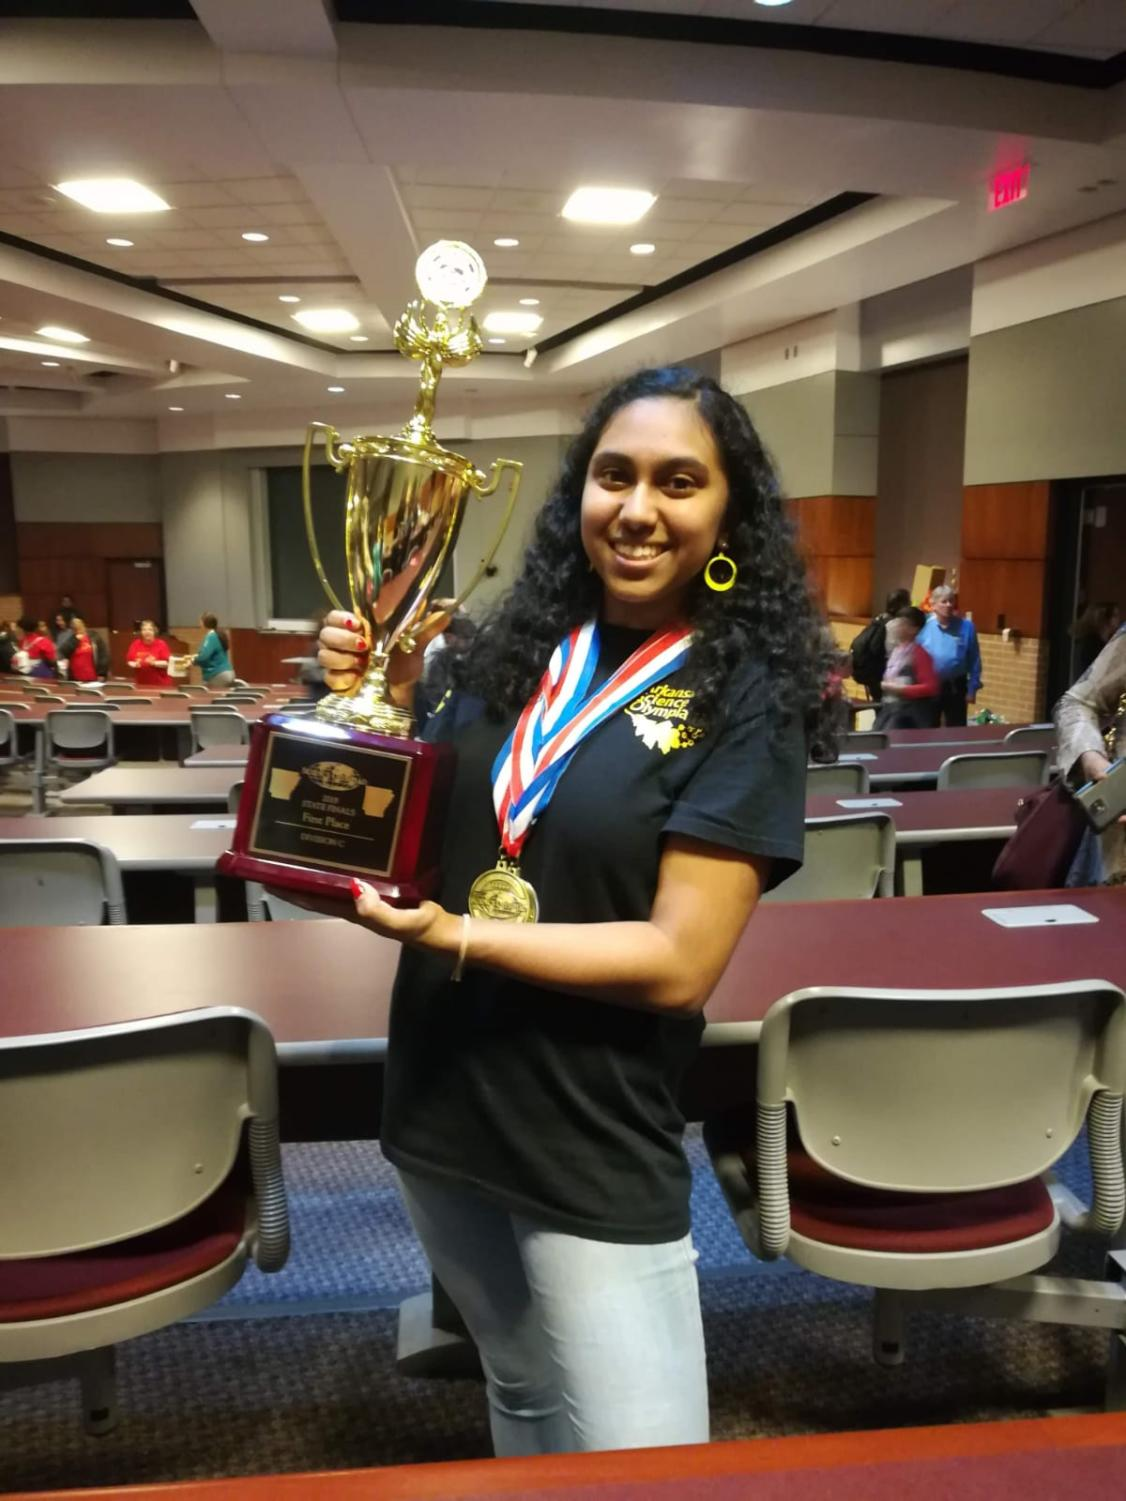 Senior Medha Guribelli wins first place in State Finals for Science Olympiad (photo courtesy of Medha Guribelli).